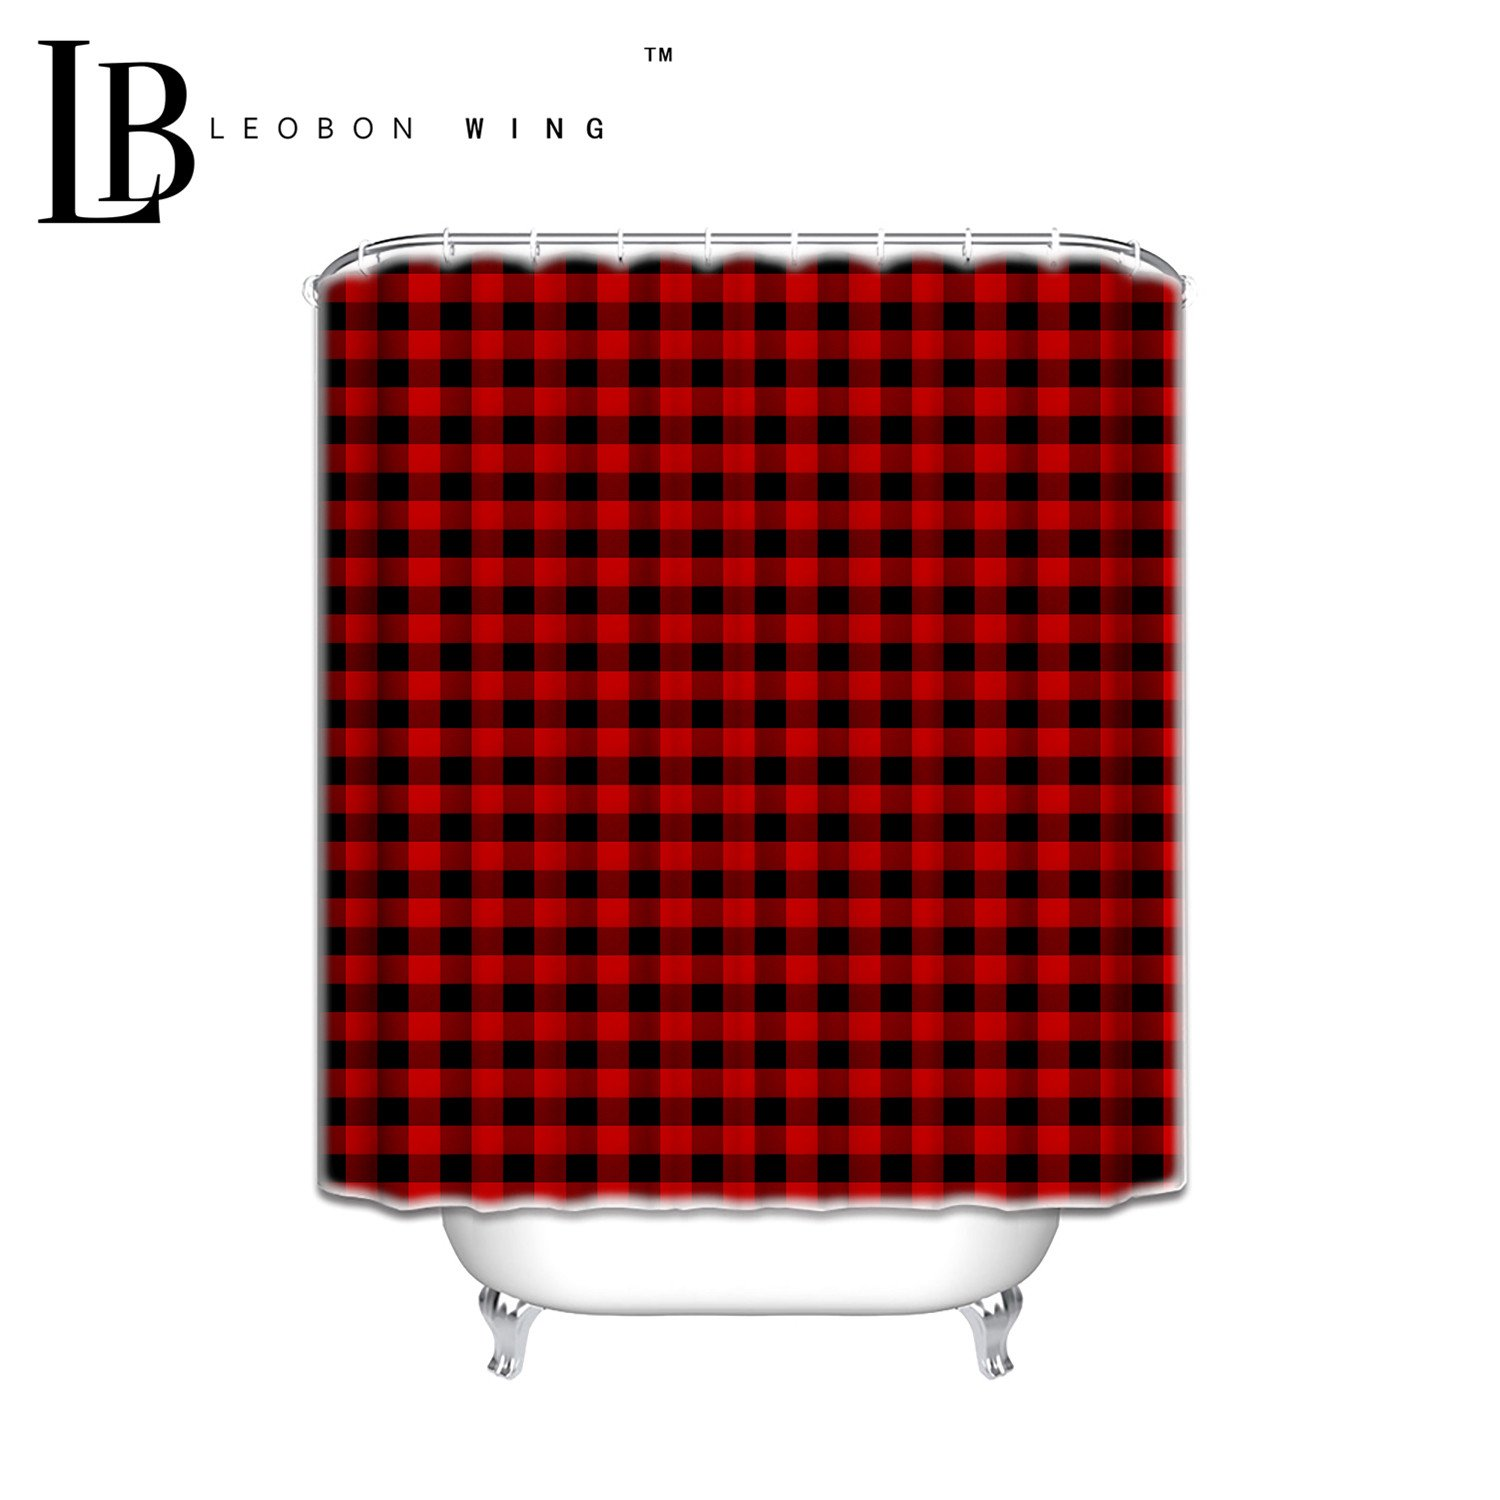 Personalized Shower Curtains Rustic Red Black Buffalo Check Plaid Pattern Shower Curtain 72 W x 72 L by Ocean color